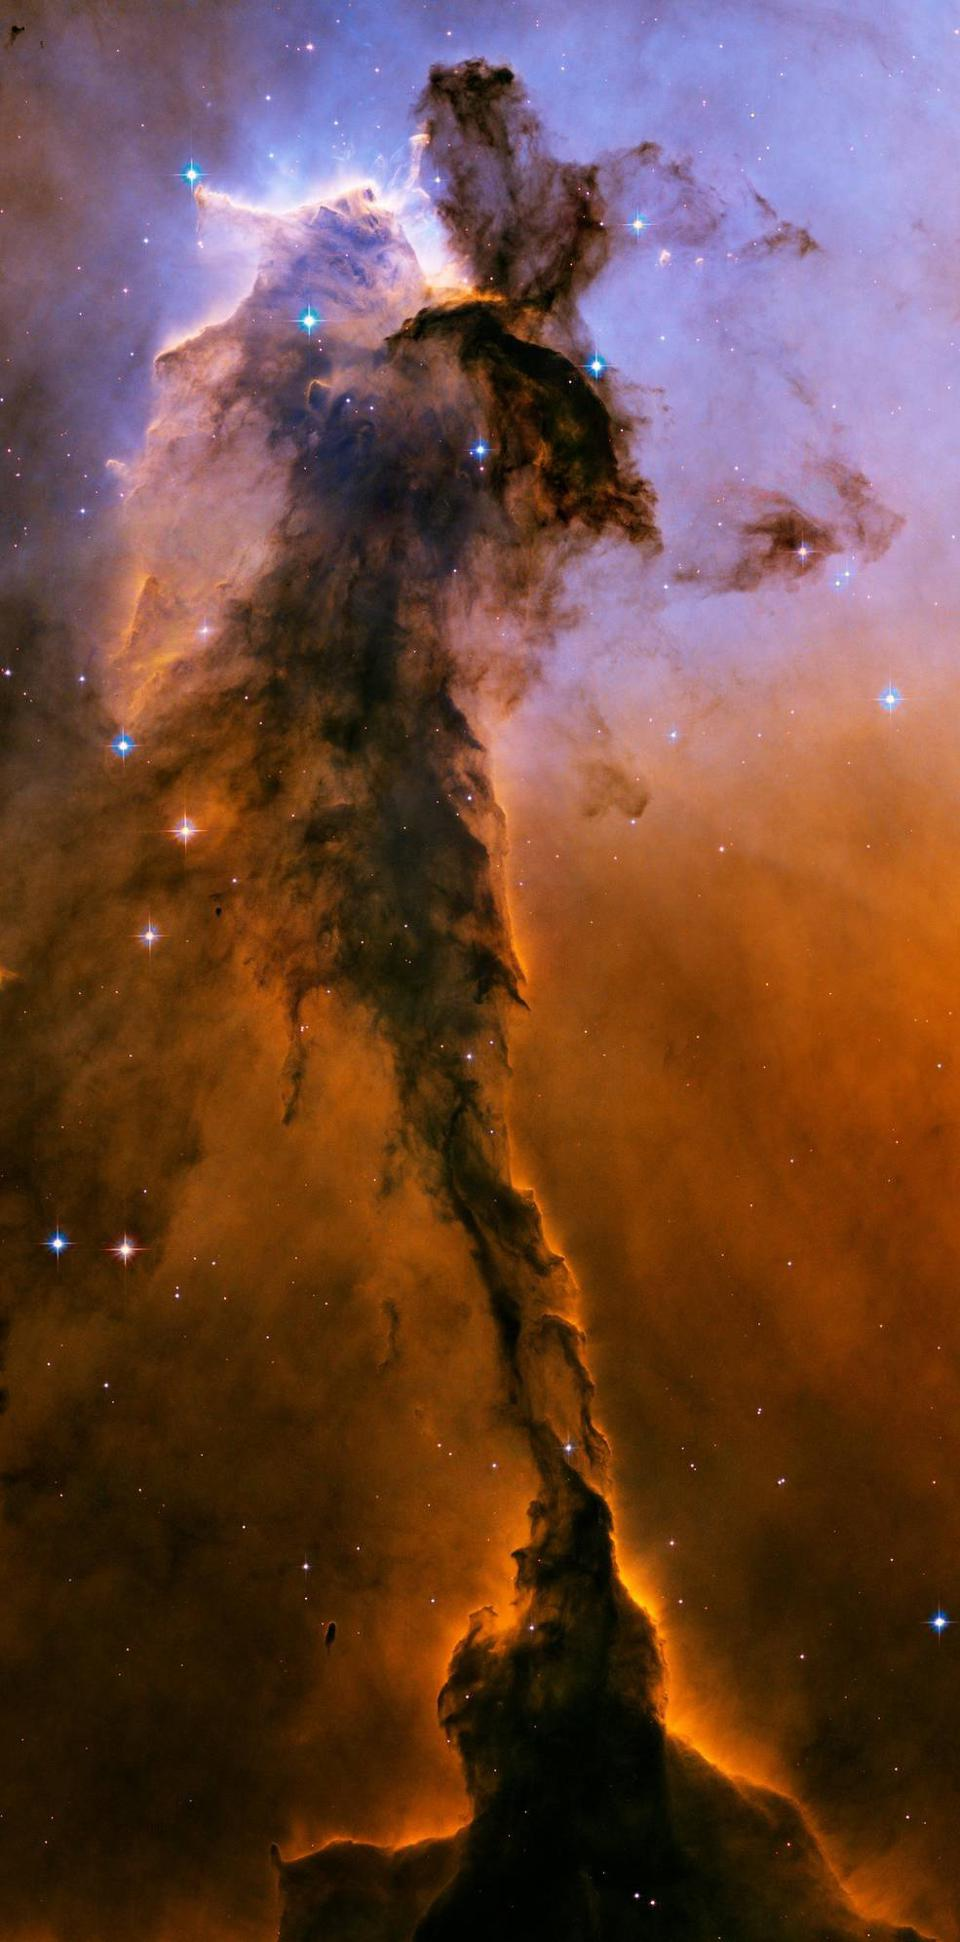 This 9.5 light-year long spire of dust, known as the Fairy, is found in the Eagle Nebula.